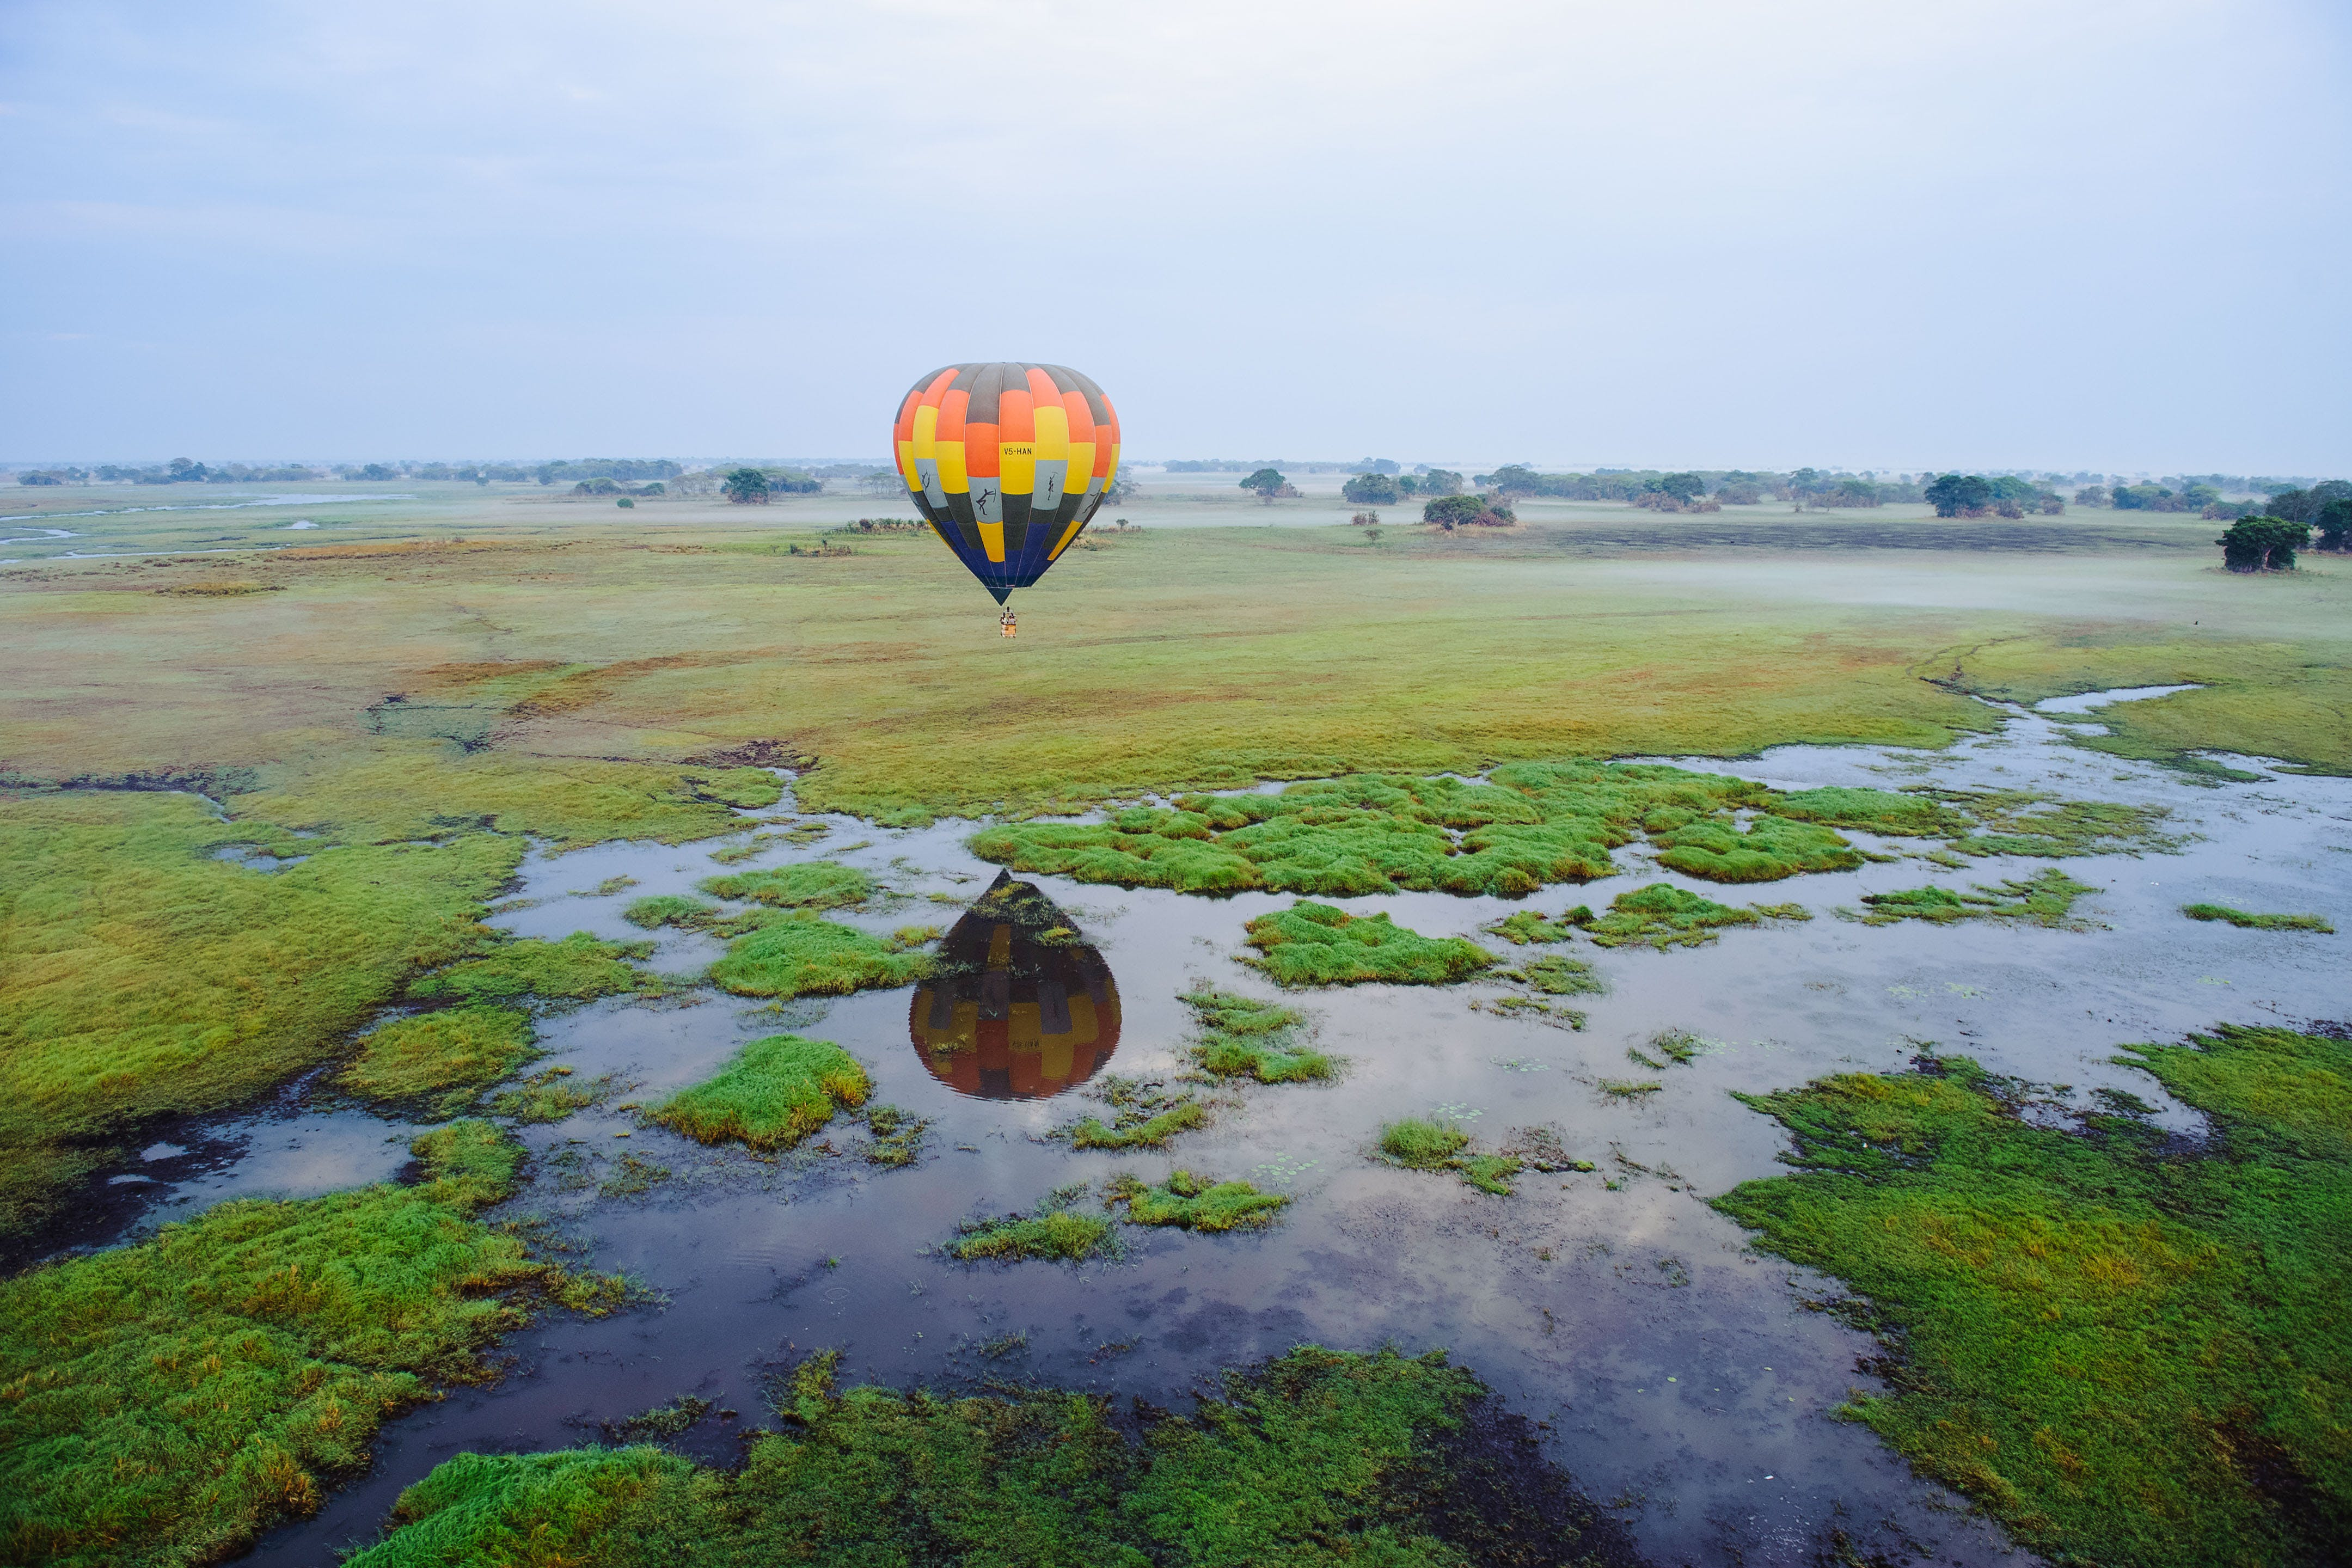 Hot air balloon safari in Kafue National Park - What to do in Zambia